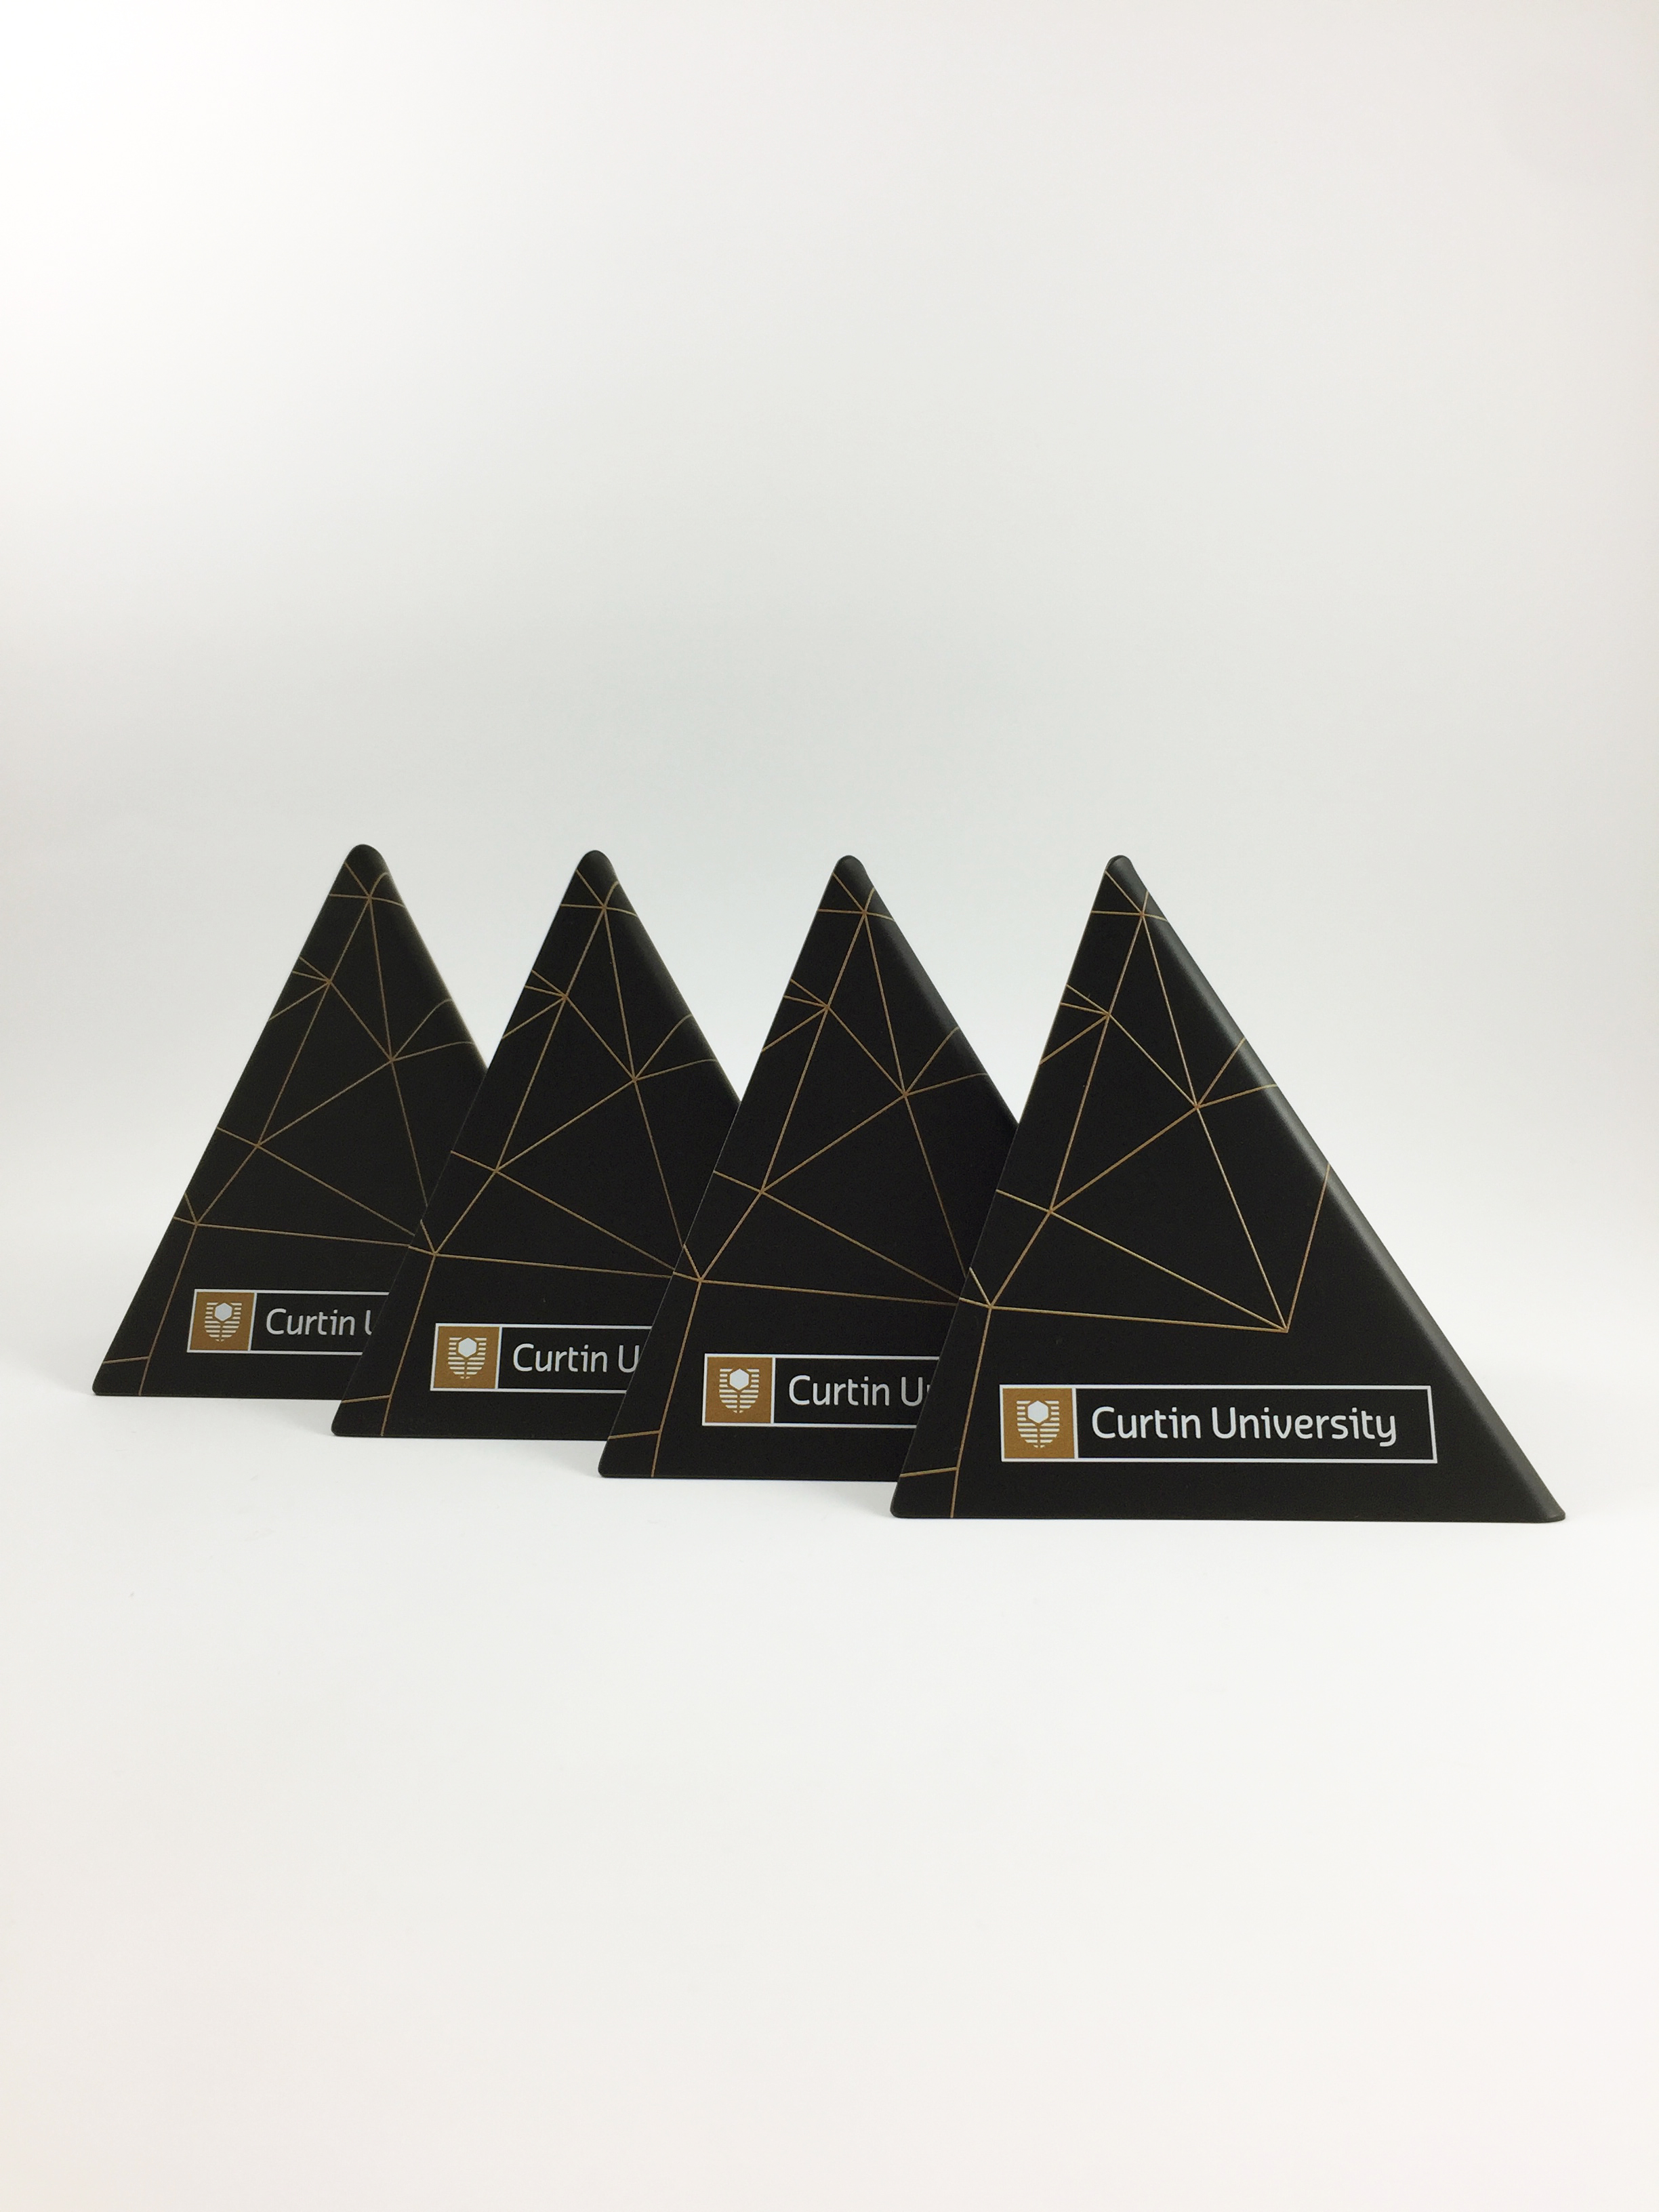 curtin-university-VC-excellence-awards-staff-trophy-02.jpg